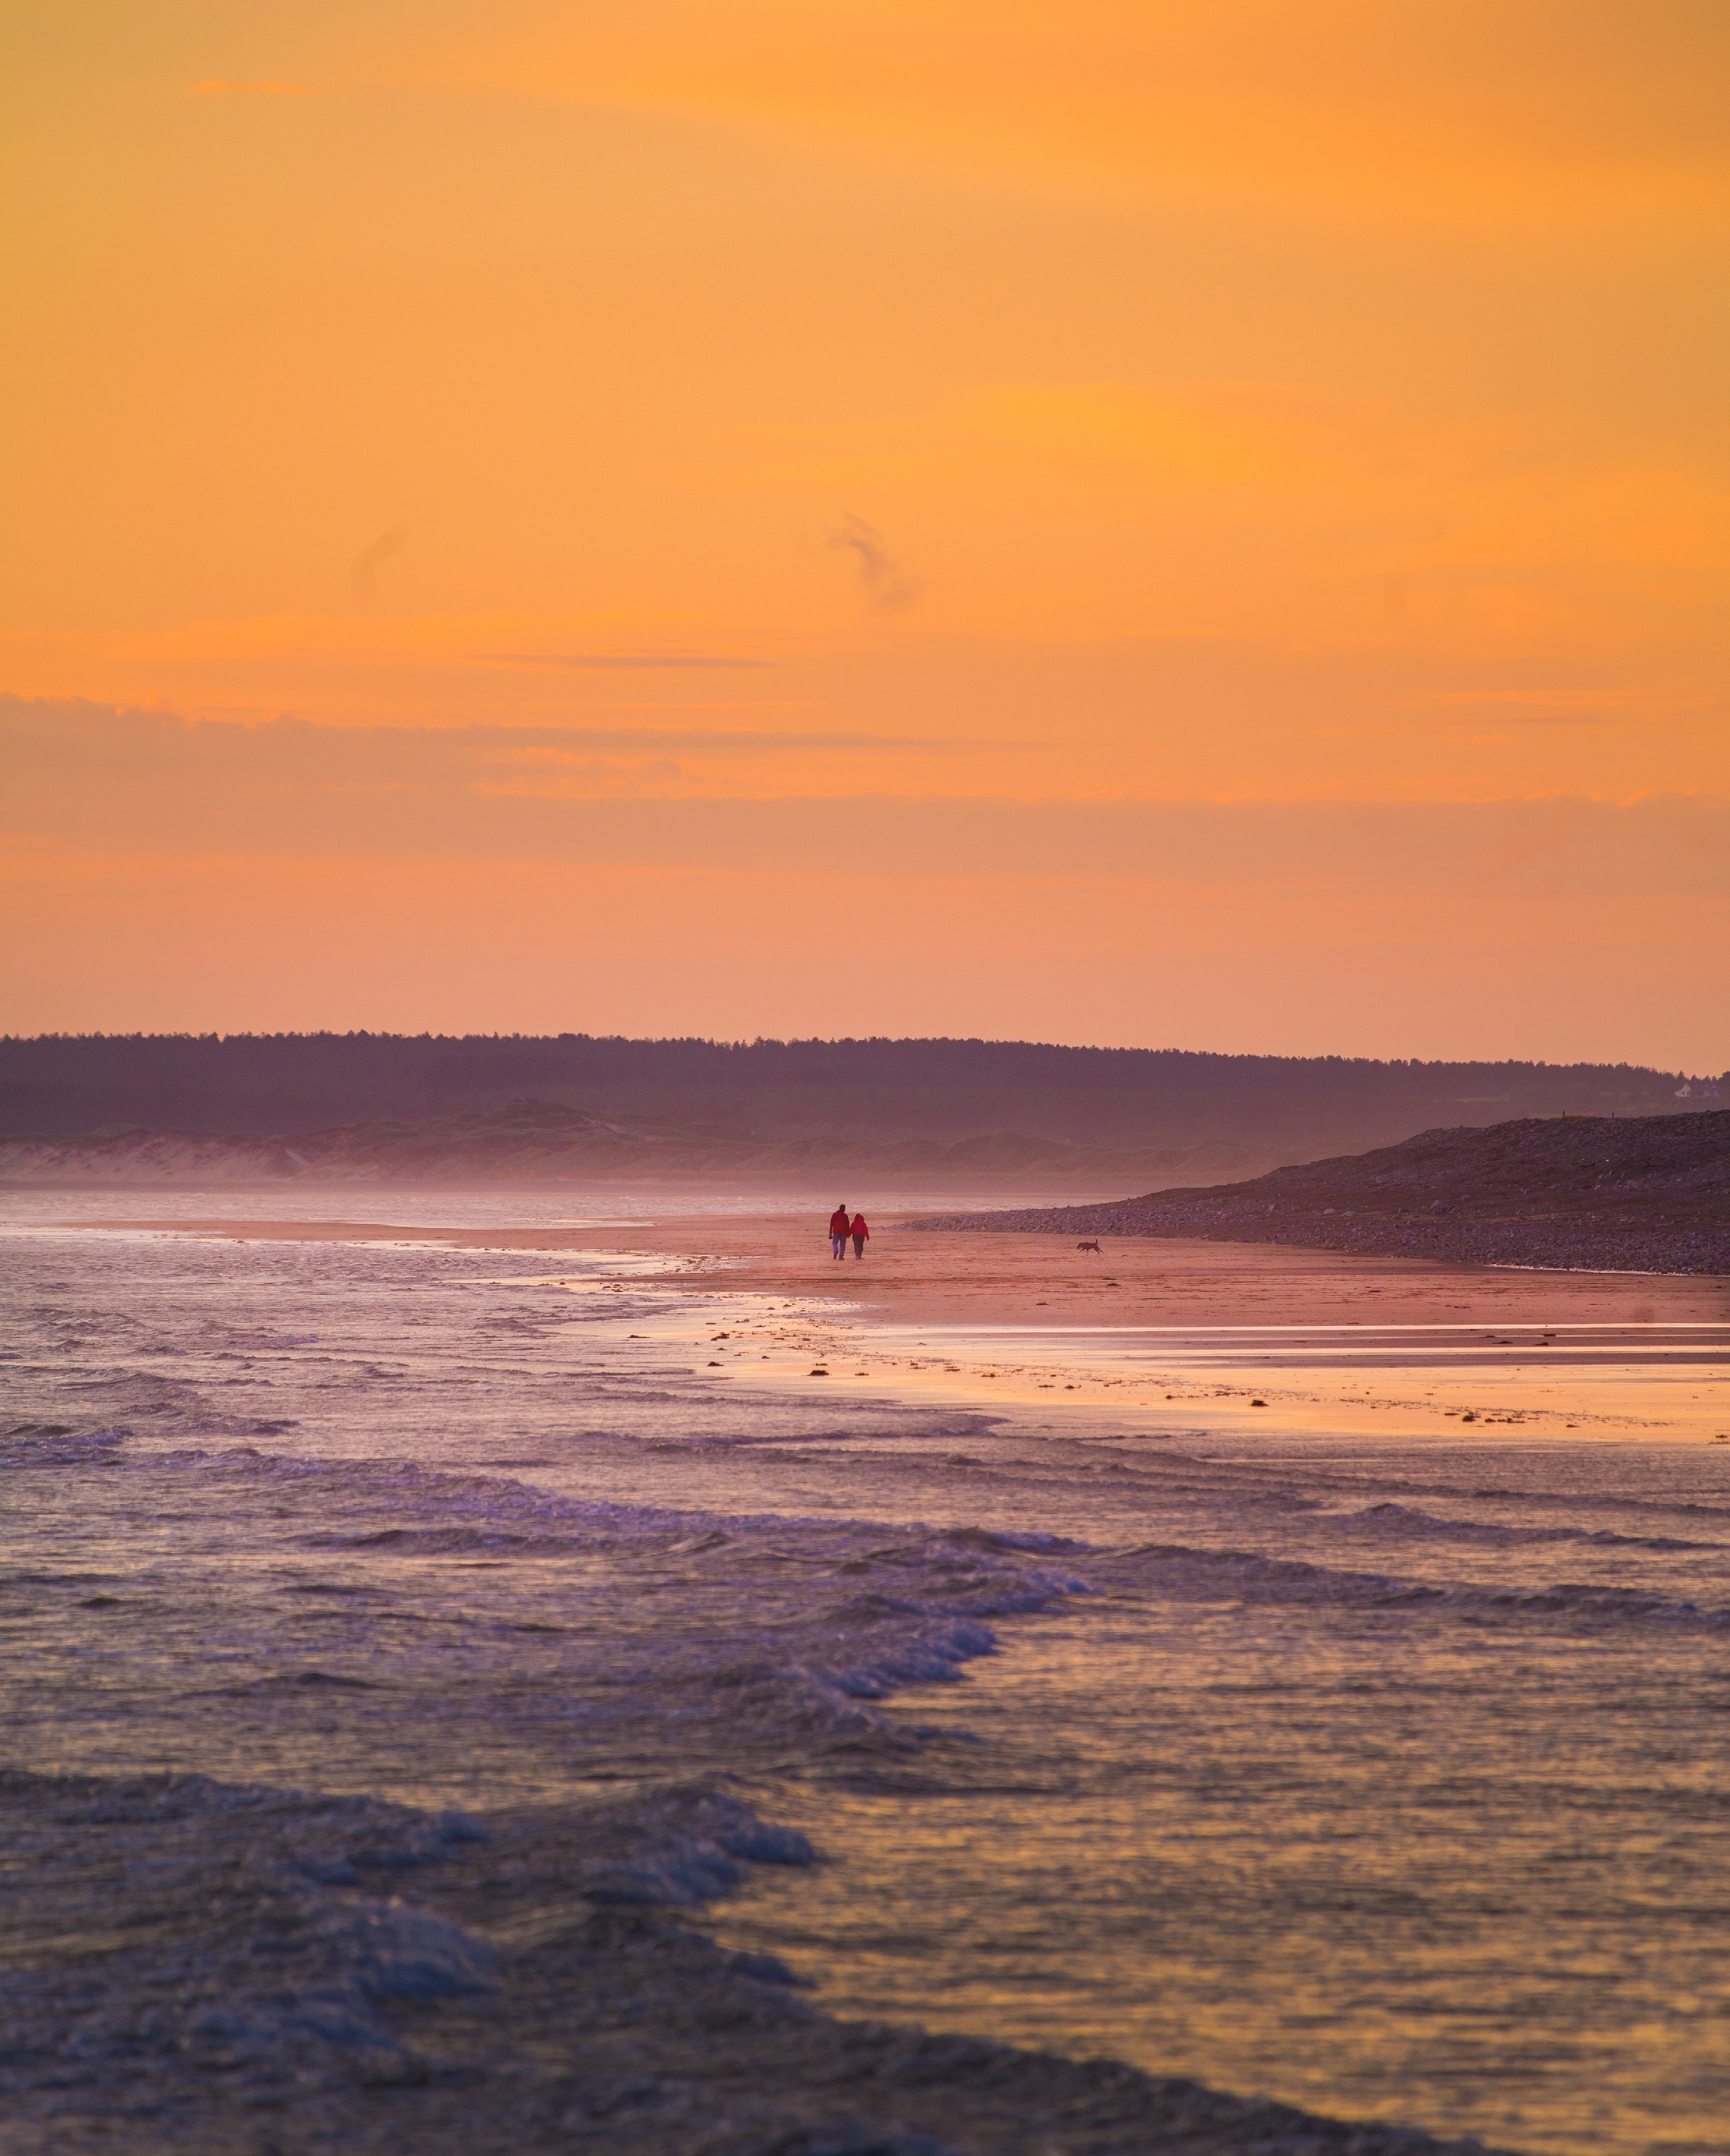 134360 download wallpaper Nature, Surf, Sunset, Stroll, Sea, Dinas, Dynas, Great Britain, United Kingdom screensavers and pictures for free